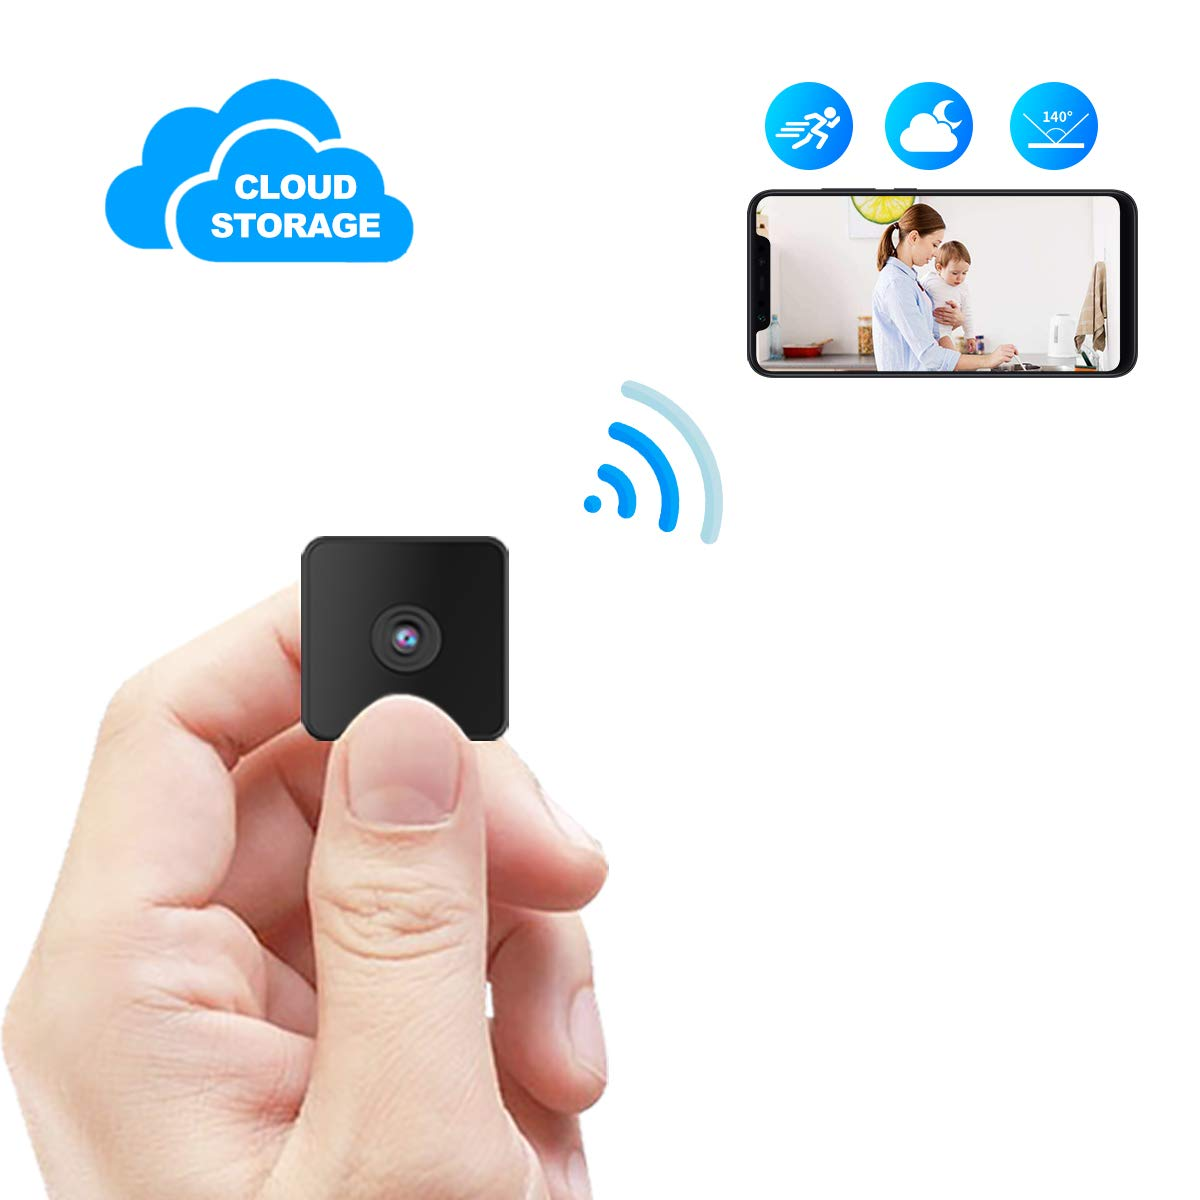 Kaisio Mini Spy Camera WiFi with Night Vision,Wireless Portable Hidden Nanny Camera with Motion Detection for Home/Office Wireless Security IP Camera Support Cloud Storage(2019 New Version) by Kaisio